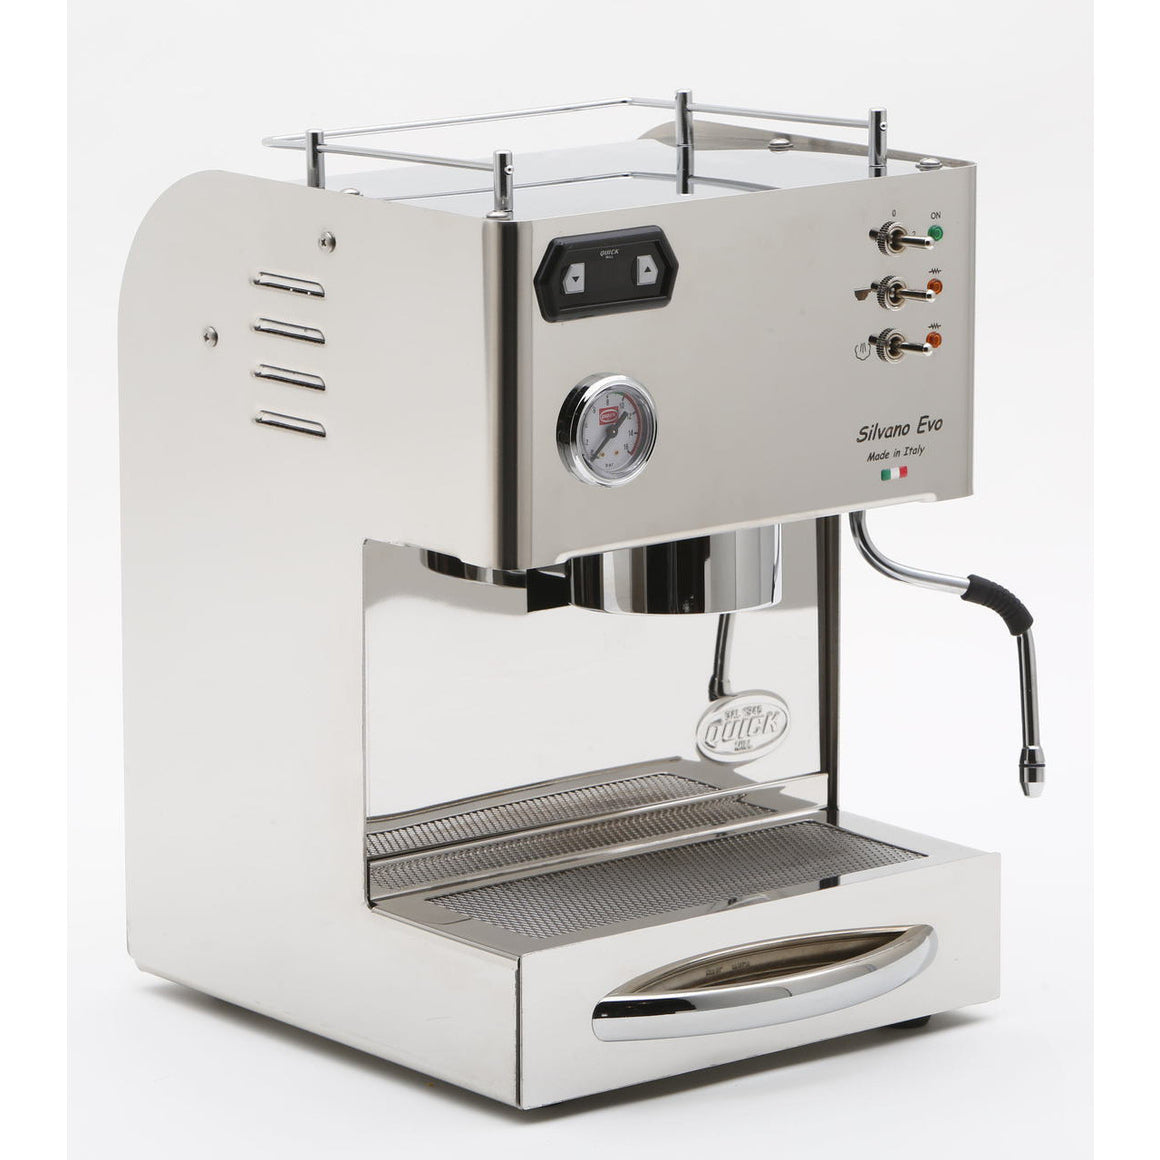 QUICK MILL SILVANO EVO ESPRESSO MACHINE - My Espresso Shop - 1